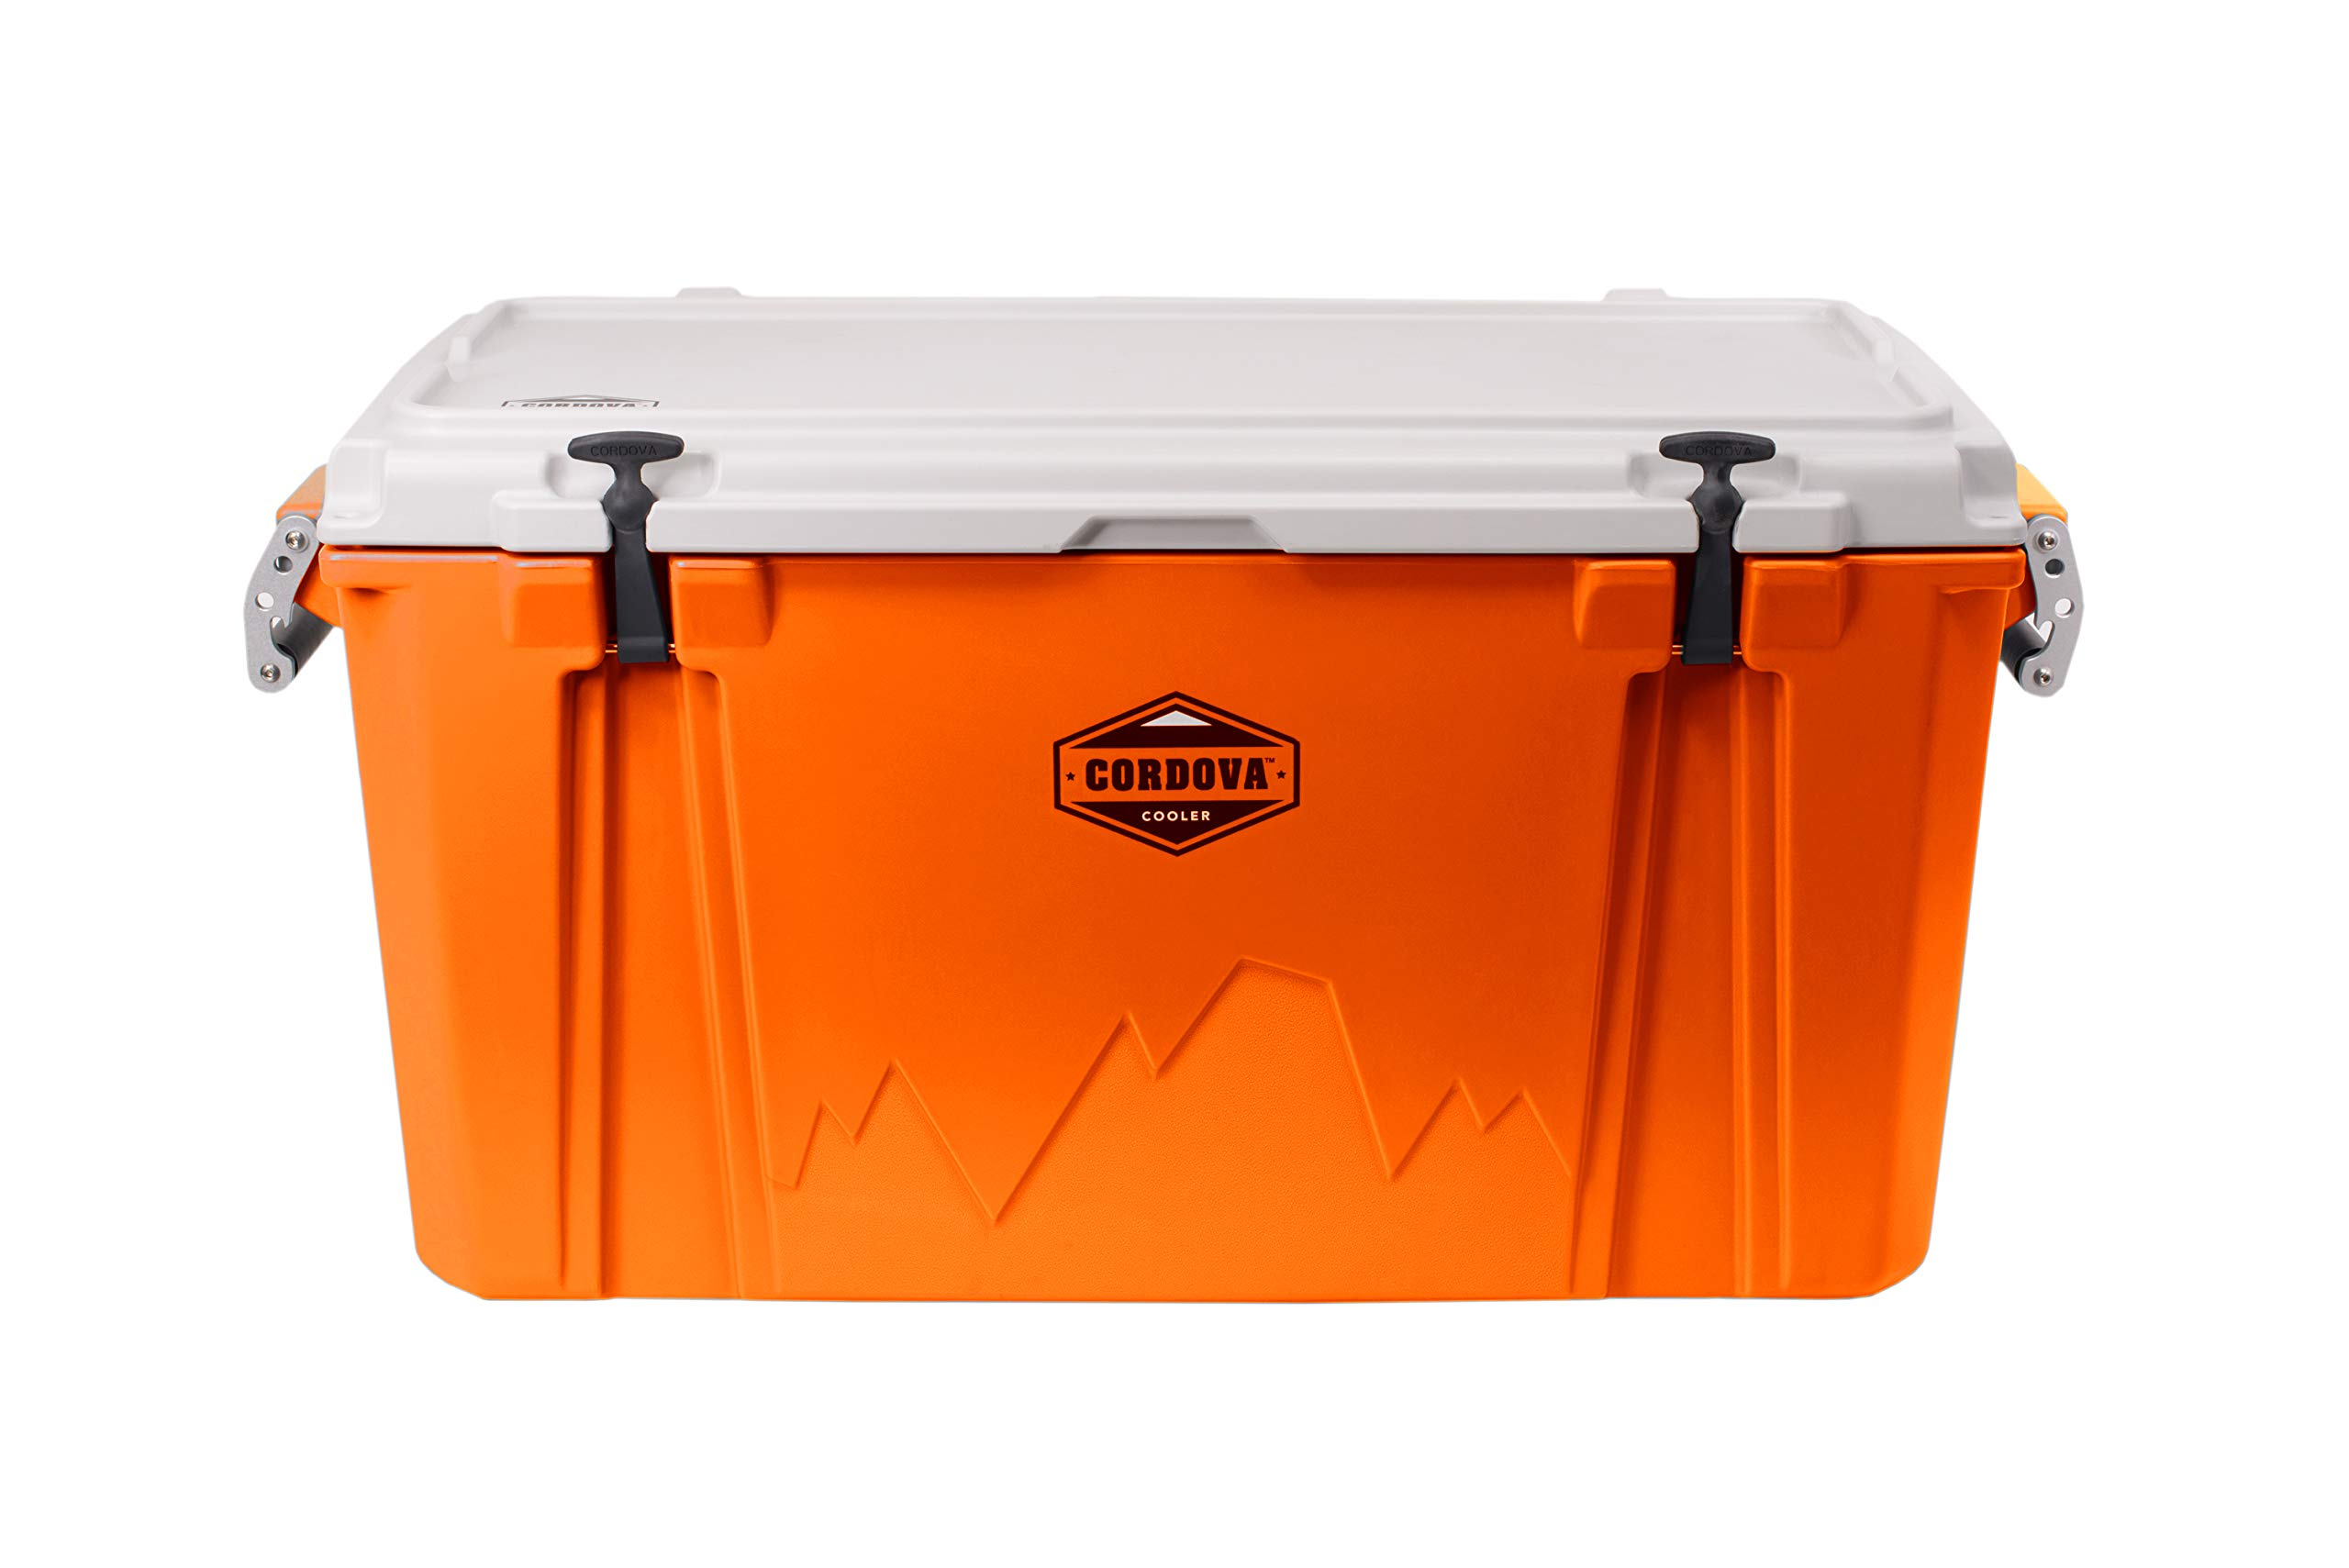 Cordova Coolers 100 Large Cooler, Orange by Cordova Coolers